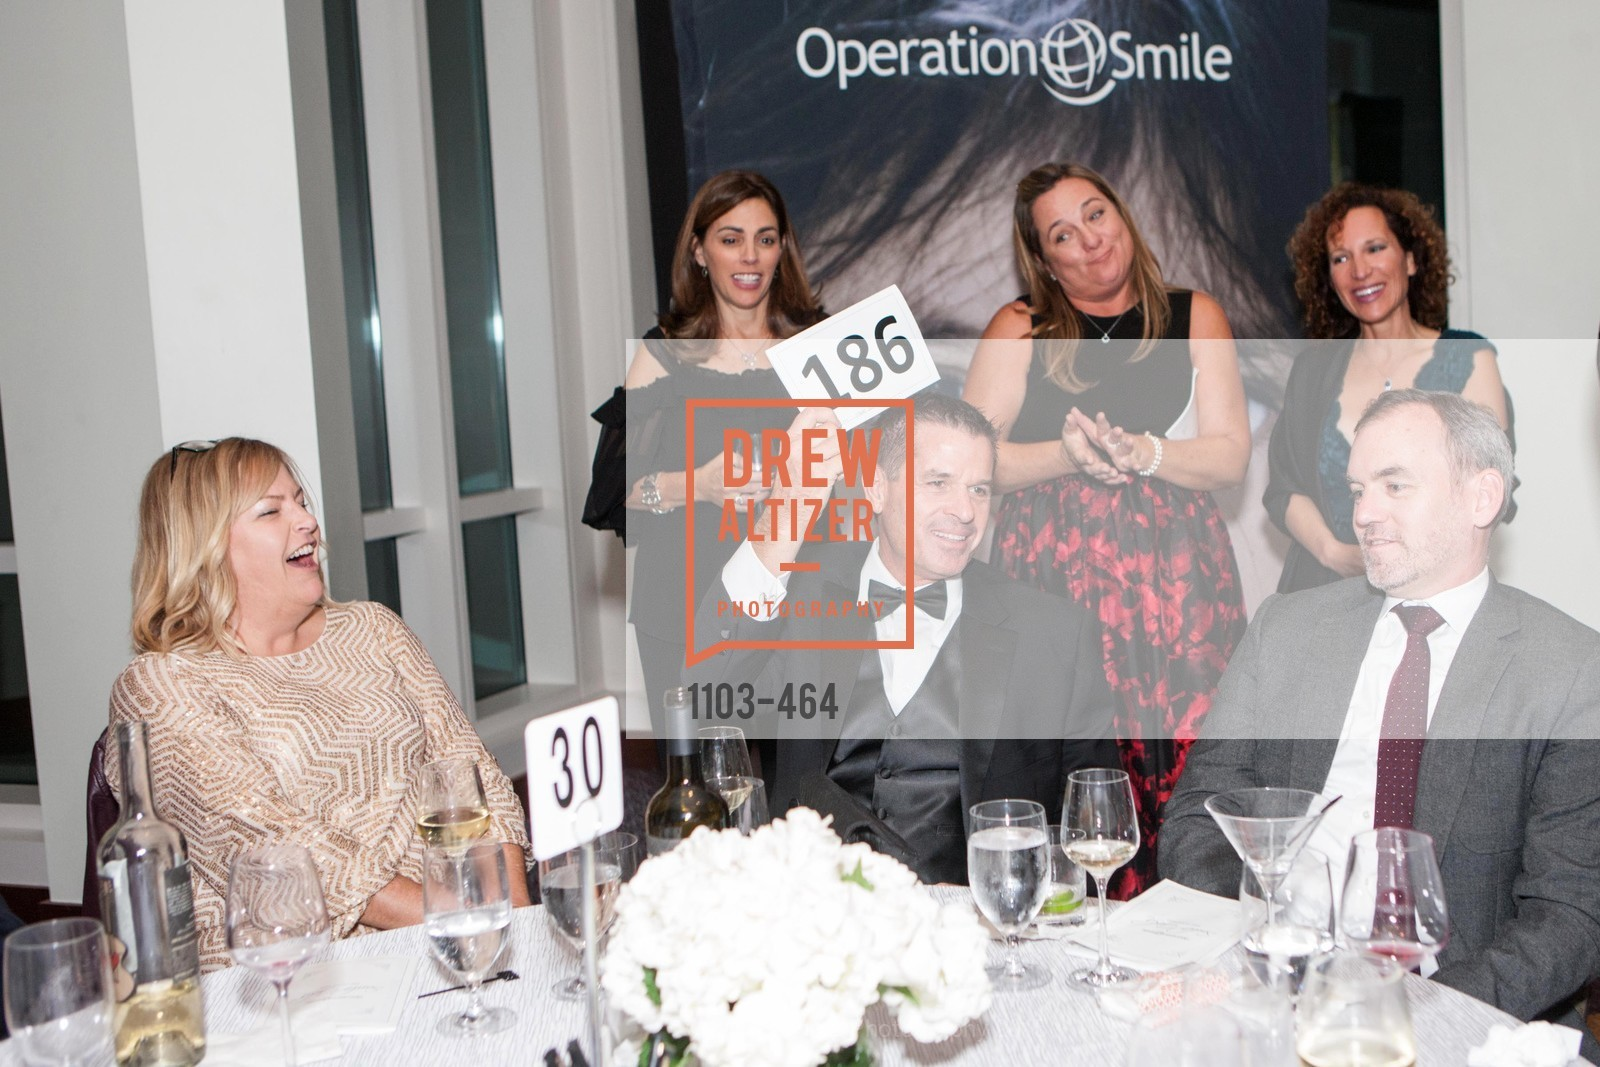 Lisa Lori, Operation Smile Presents THE SAN FRANCISCO 2015 SMILE GALA, InterContinental Hotel, November 7th, 2015,Drew Altizer, Drew Altizer Photography, full-service agency, private events, San Francisco photographer, photographer california